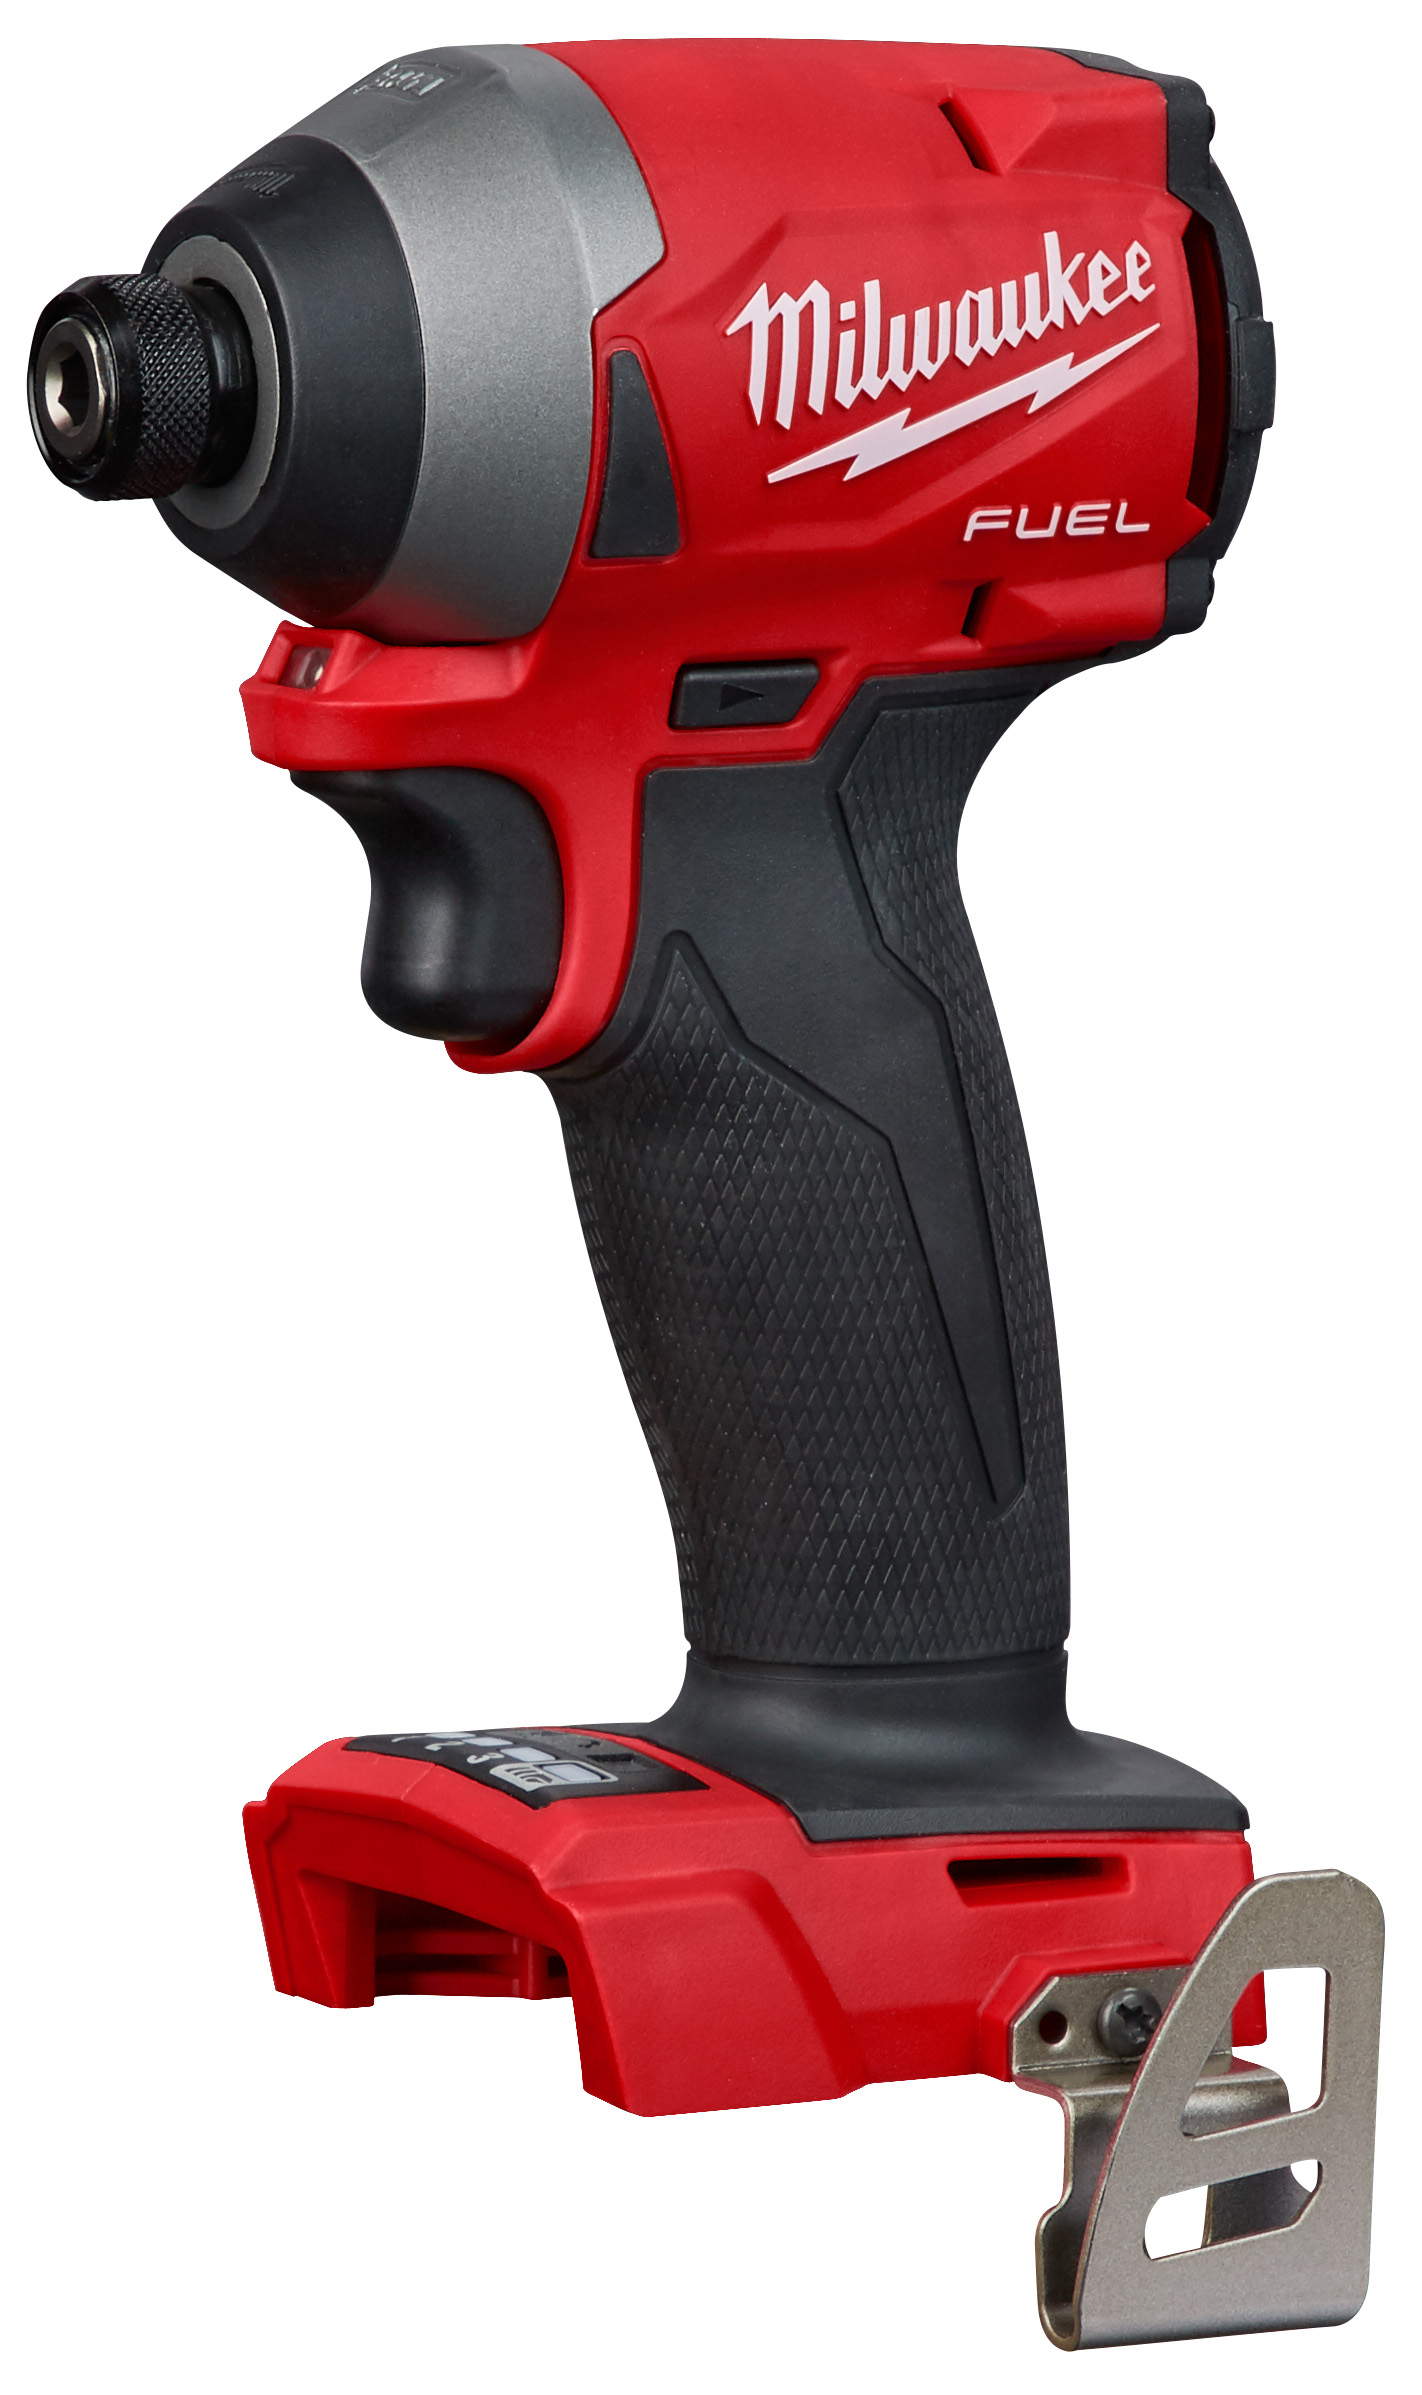 Milwaukee® M18™ FUEL™ 2853-20 Cordless Impact Driver, 1/4 in Straight Drive, 4250 bpm, 2000 in-lb Torque, 18 VDC, 4.59 in OAL